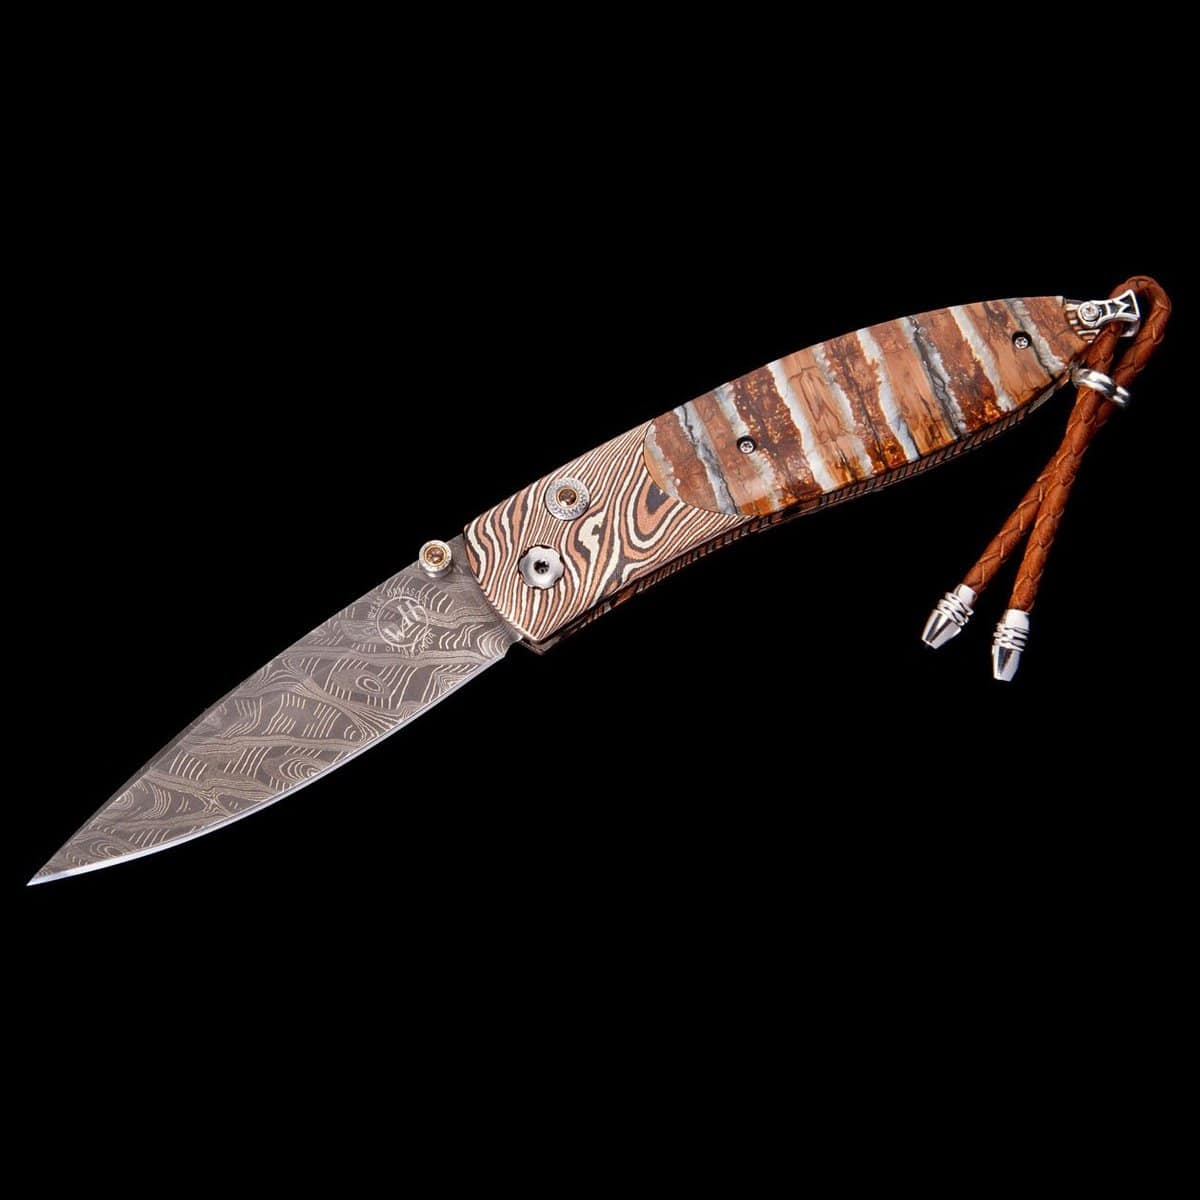 Monarch Archetype II Limited Edition Knife - B05 ARCHETYPE II-William Henry-Renee Taylor Gallery